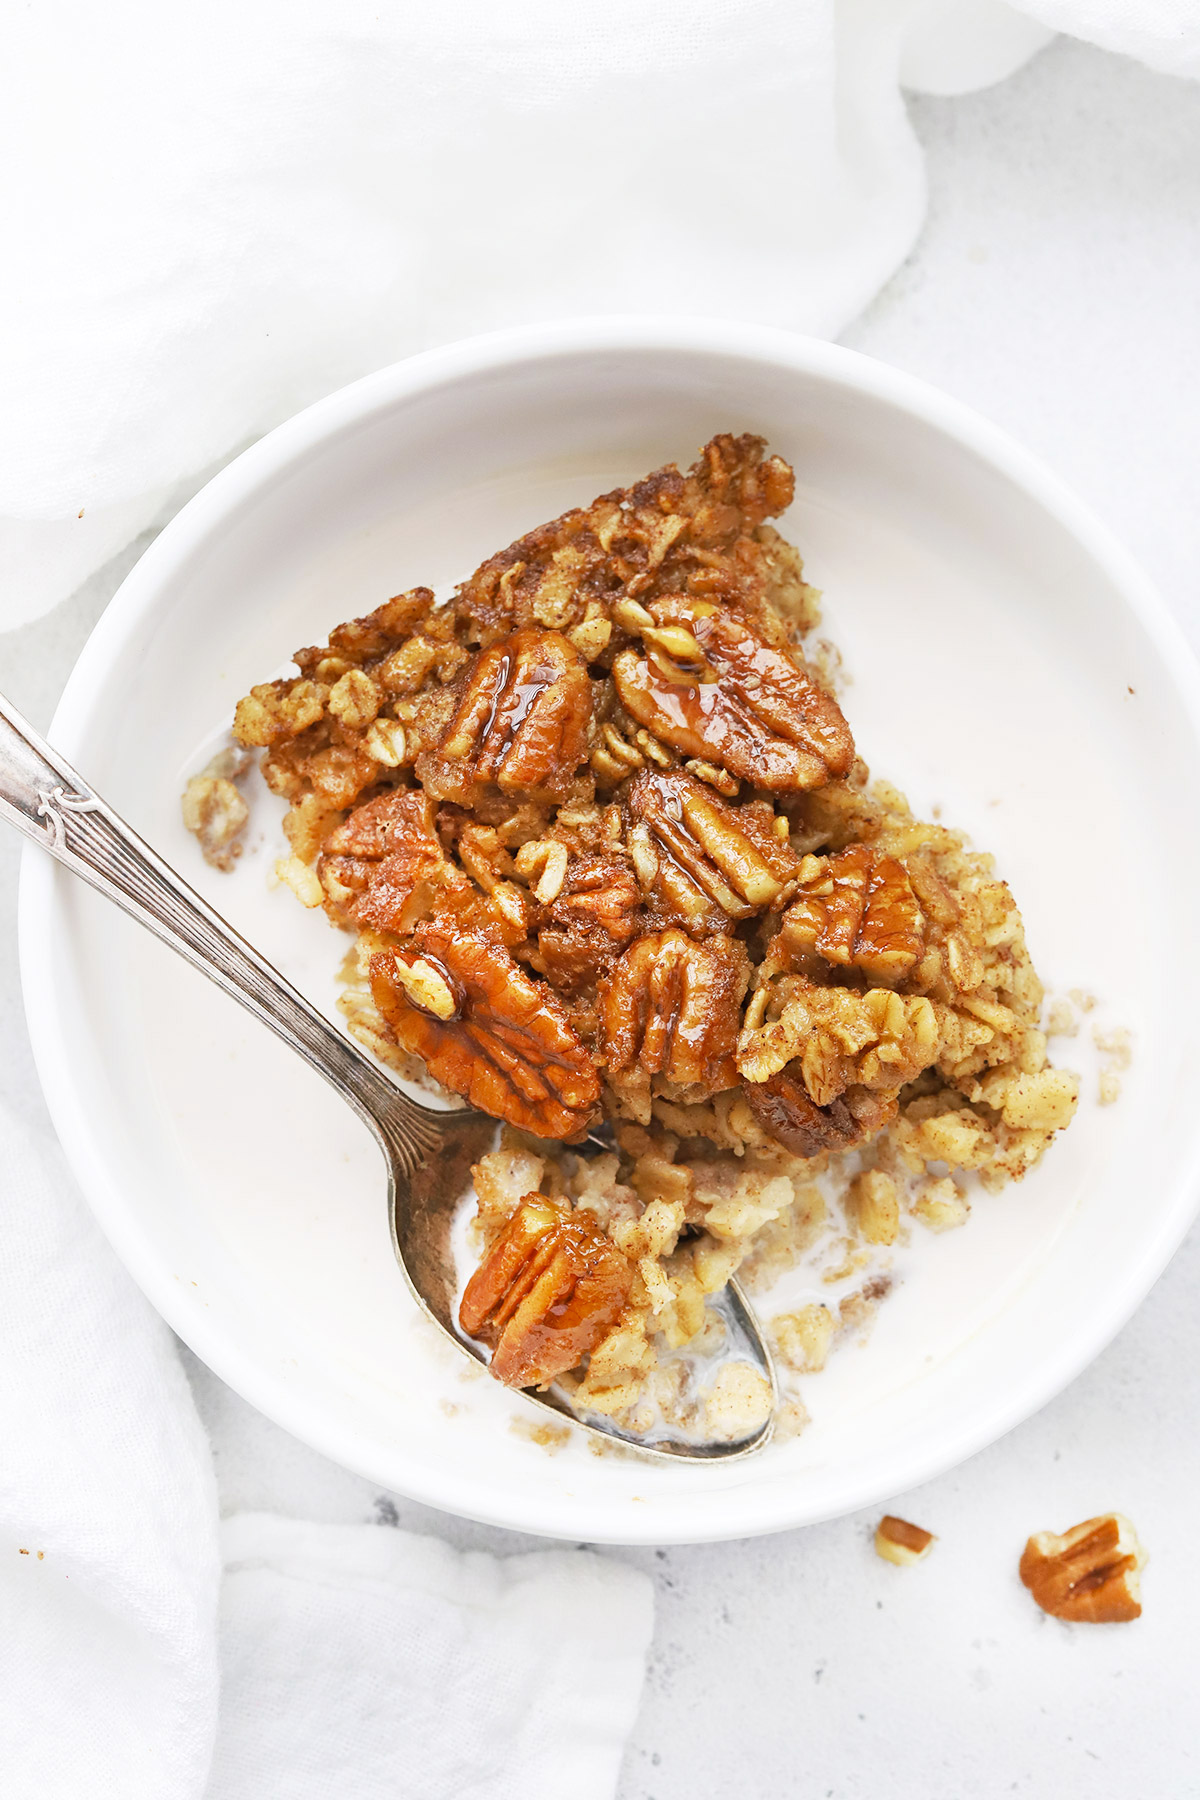 Overhead view of a warm bowl of gluten free pecan pie baked oatmeal with almond milk